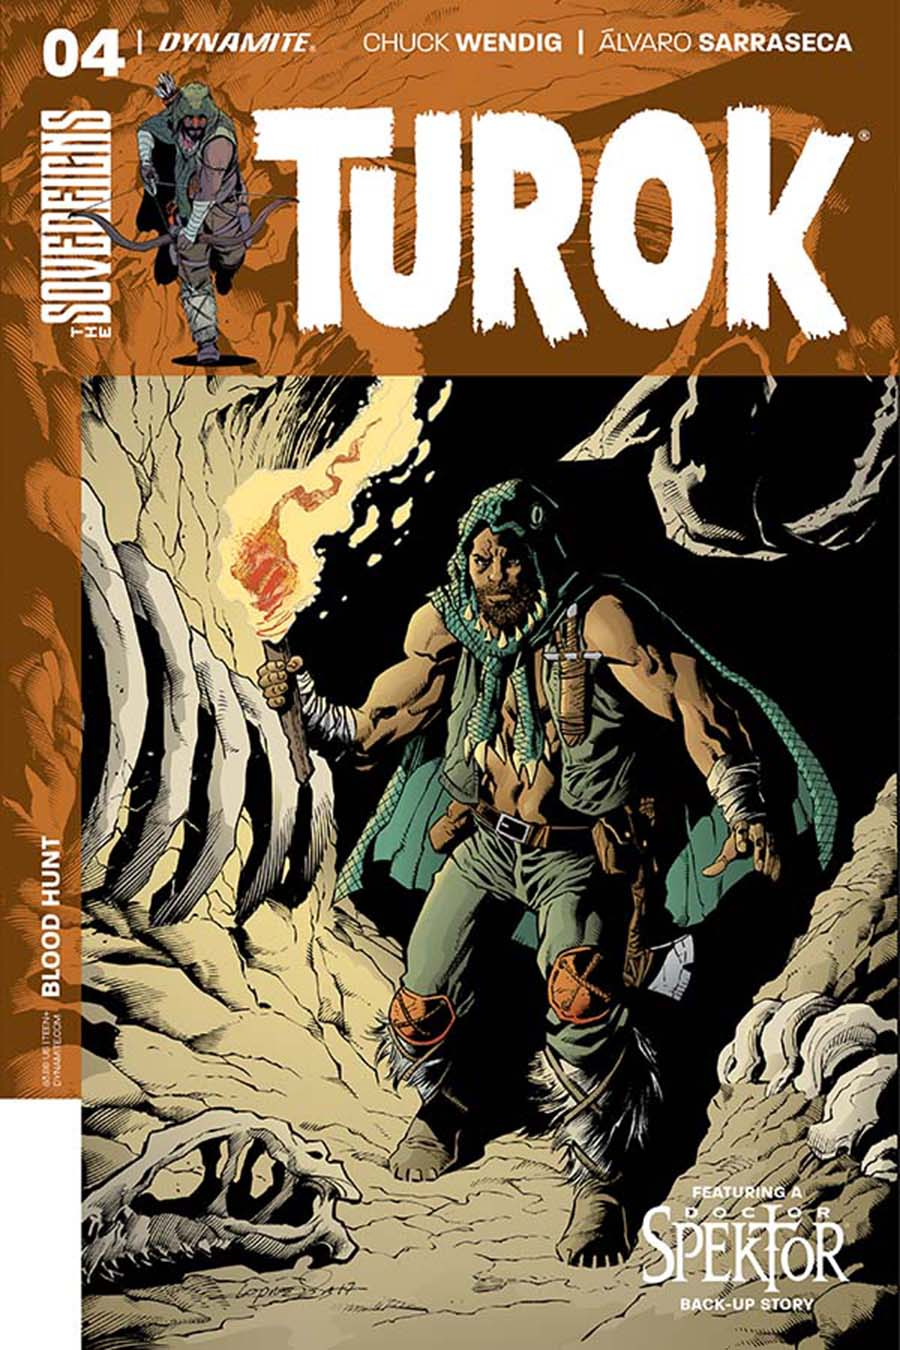 Turok Vol 2 #4 Cover A Regular Aaron Lopresti Cover